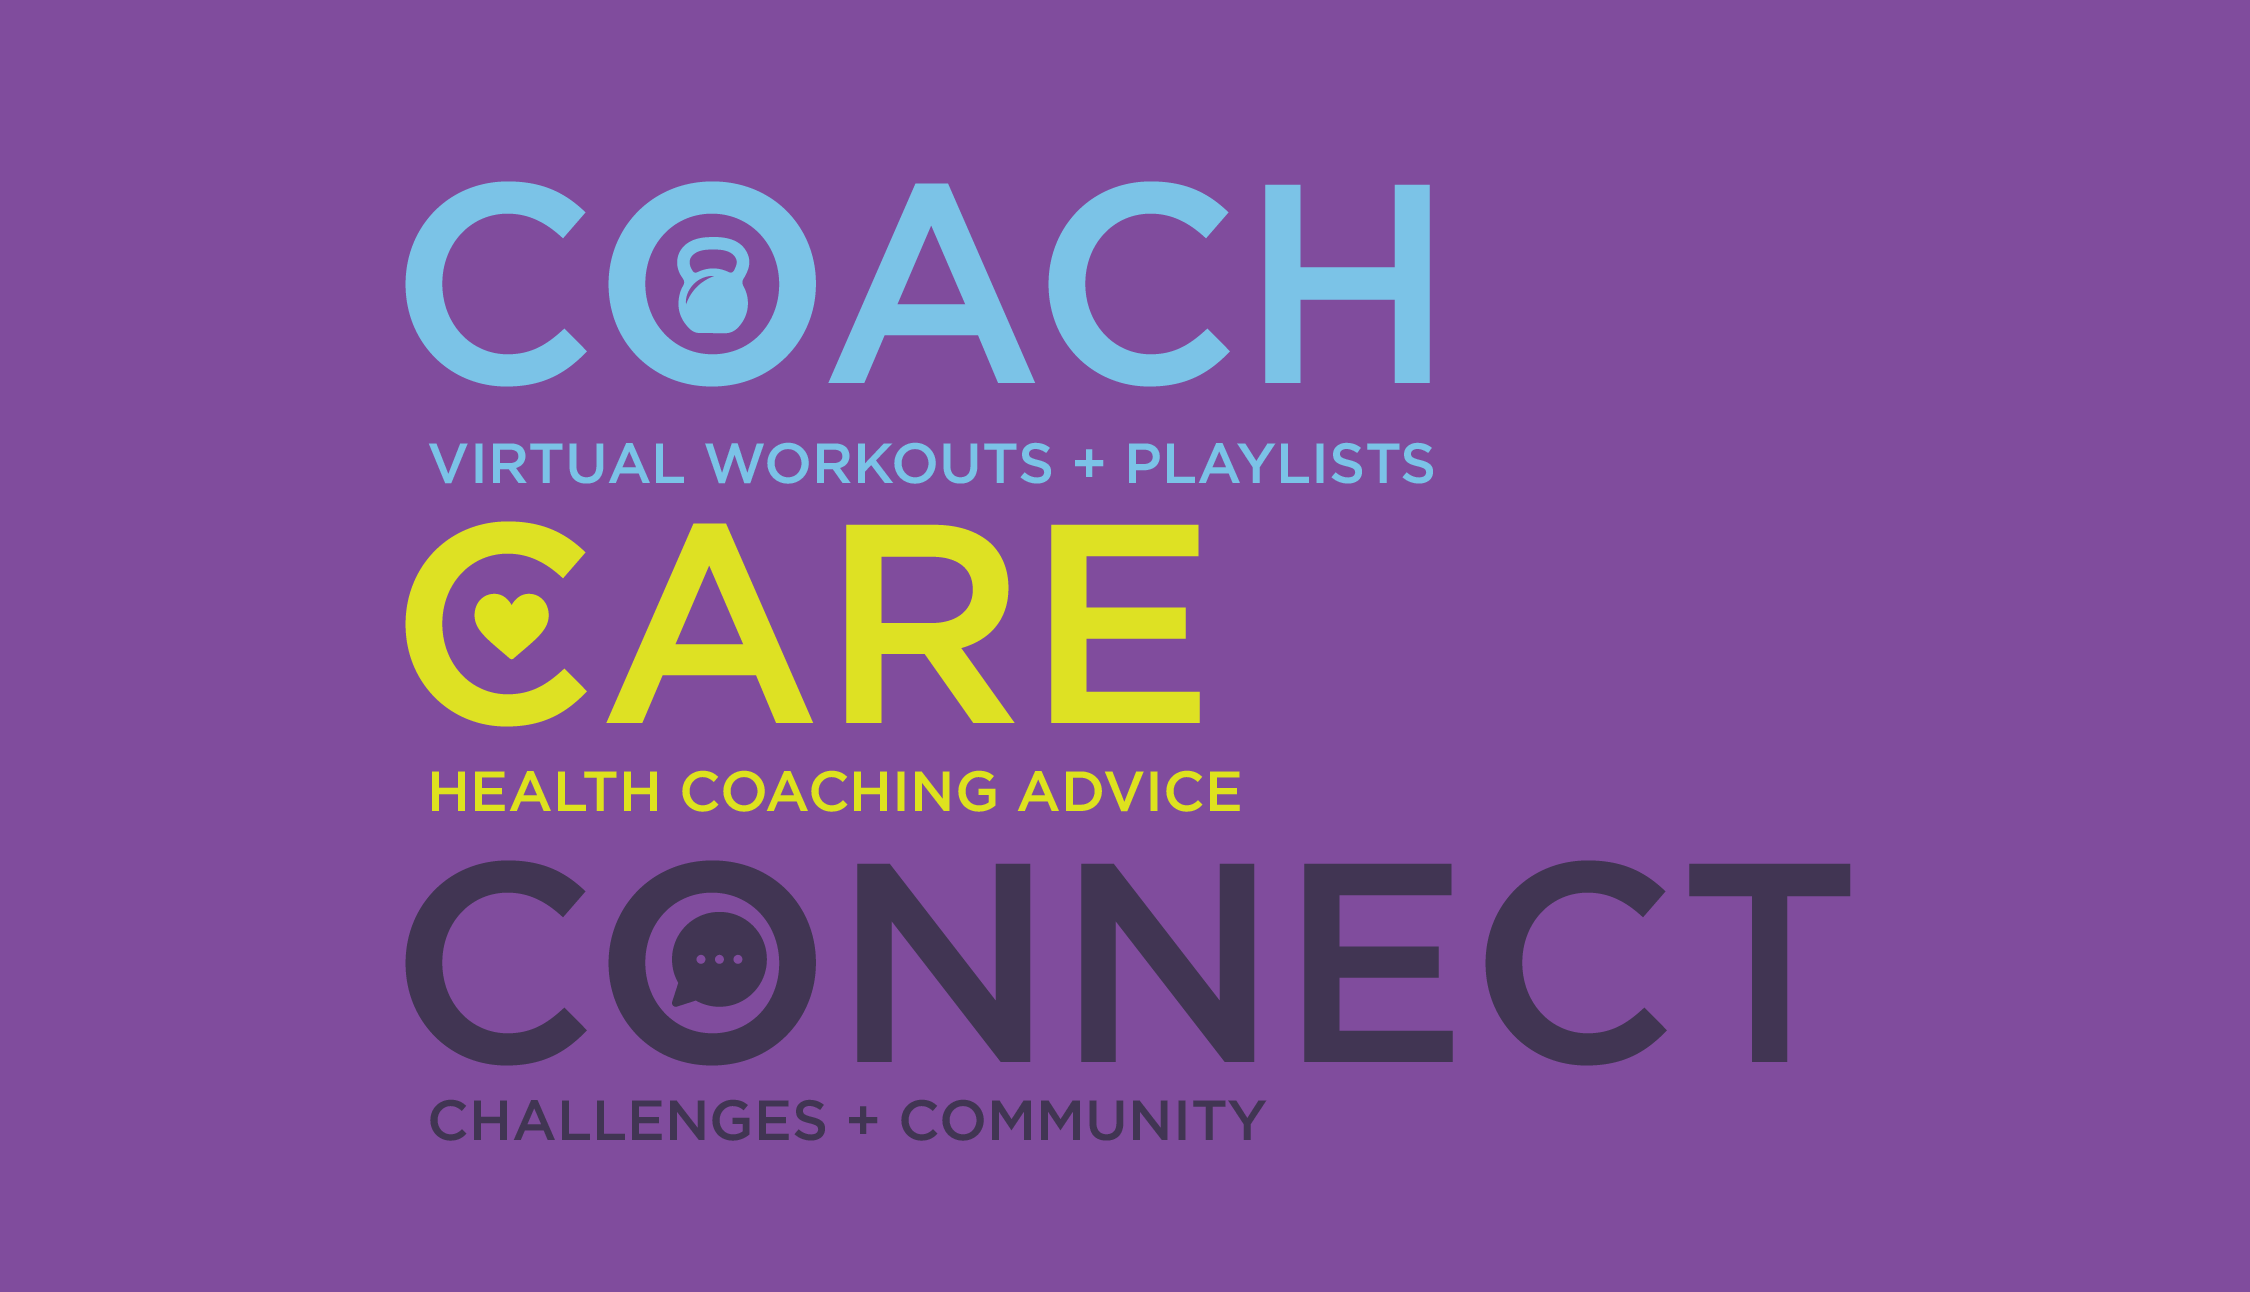 Coach. Virtual Workouts + Playlists. Care. Health Coaching Advice. Connect. Challenges + Community.